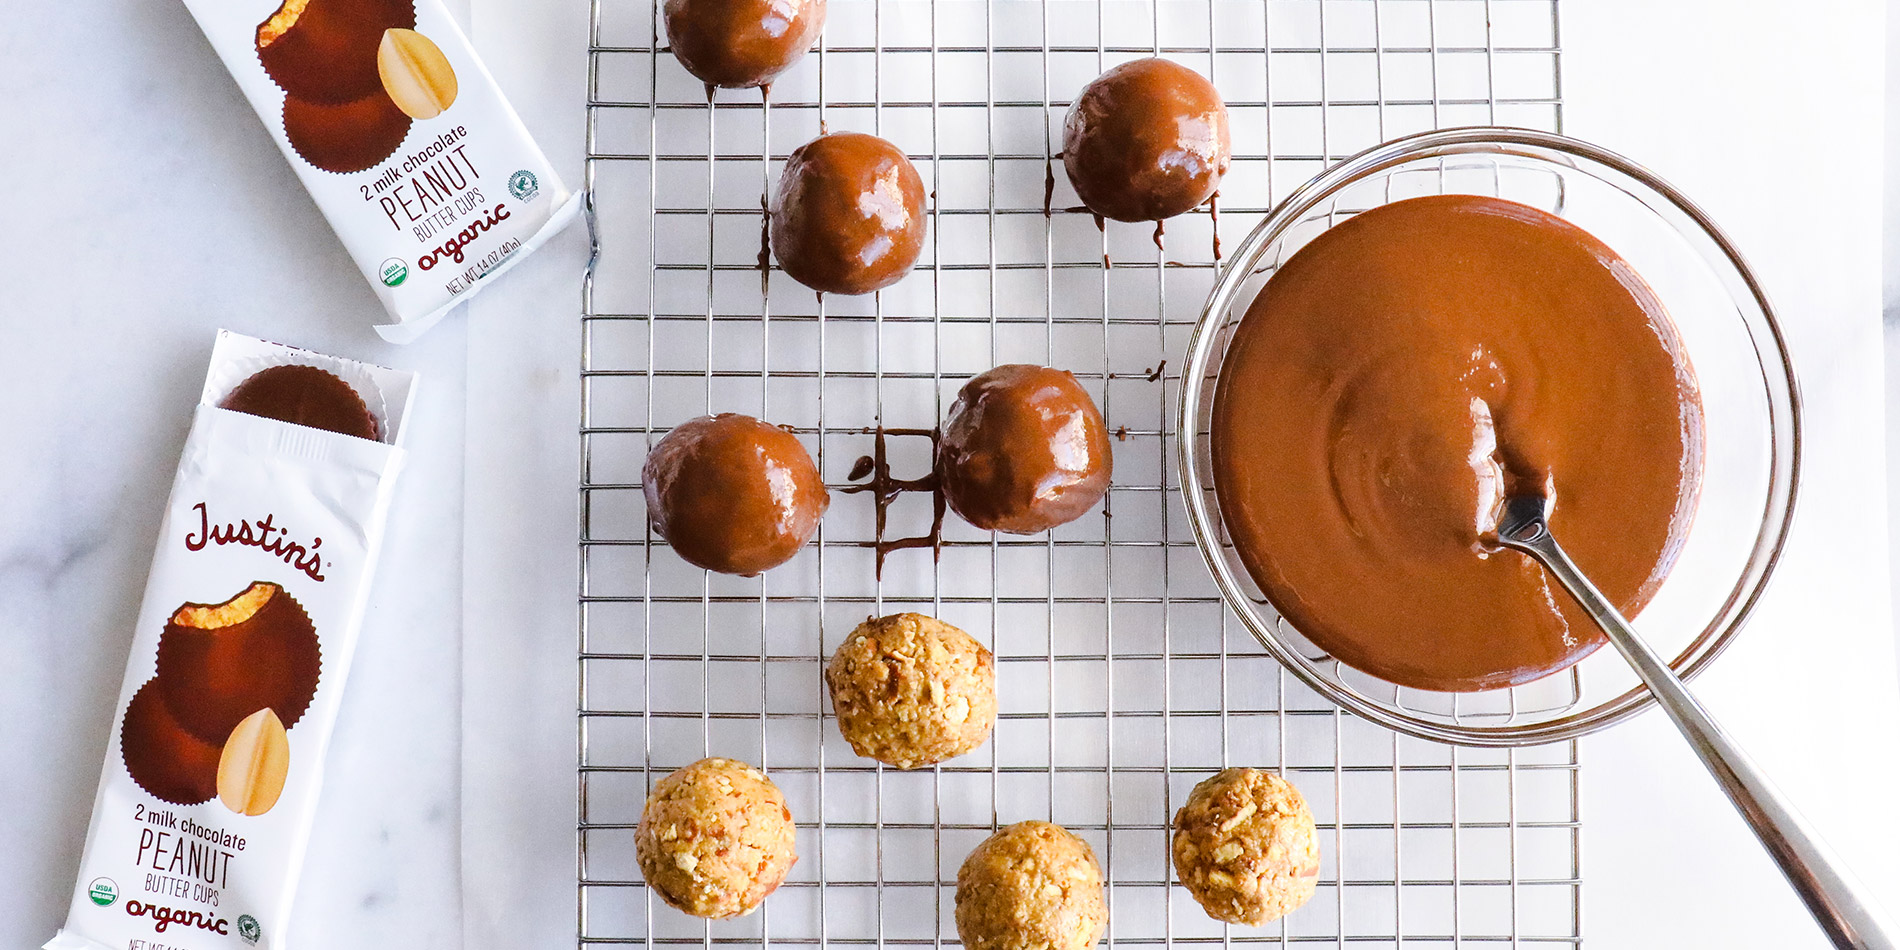 Peanut Butter Pretzel Balls on a cooling tray with 2 peanut butter cup packs on the left on a white marble background